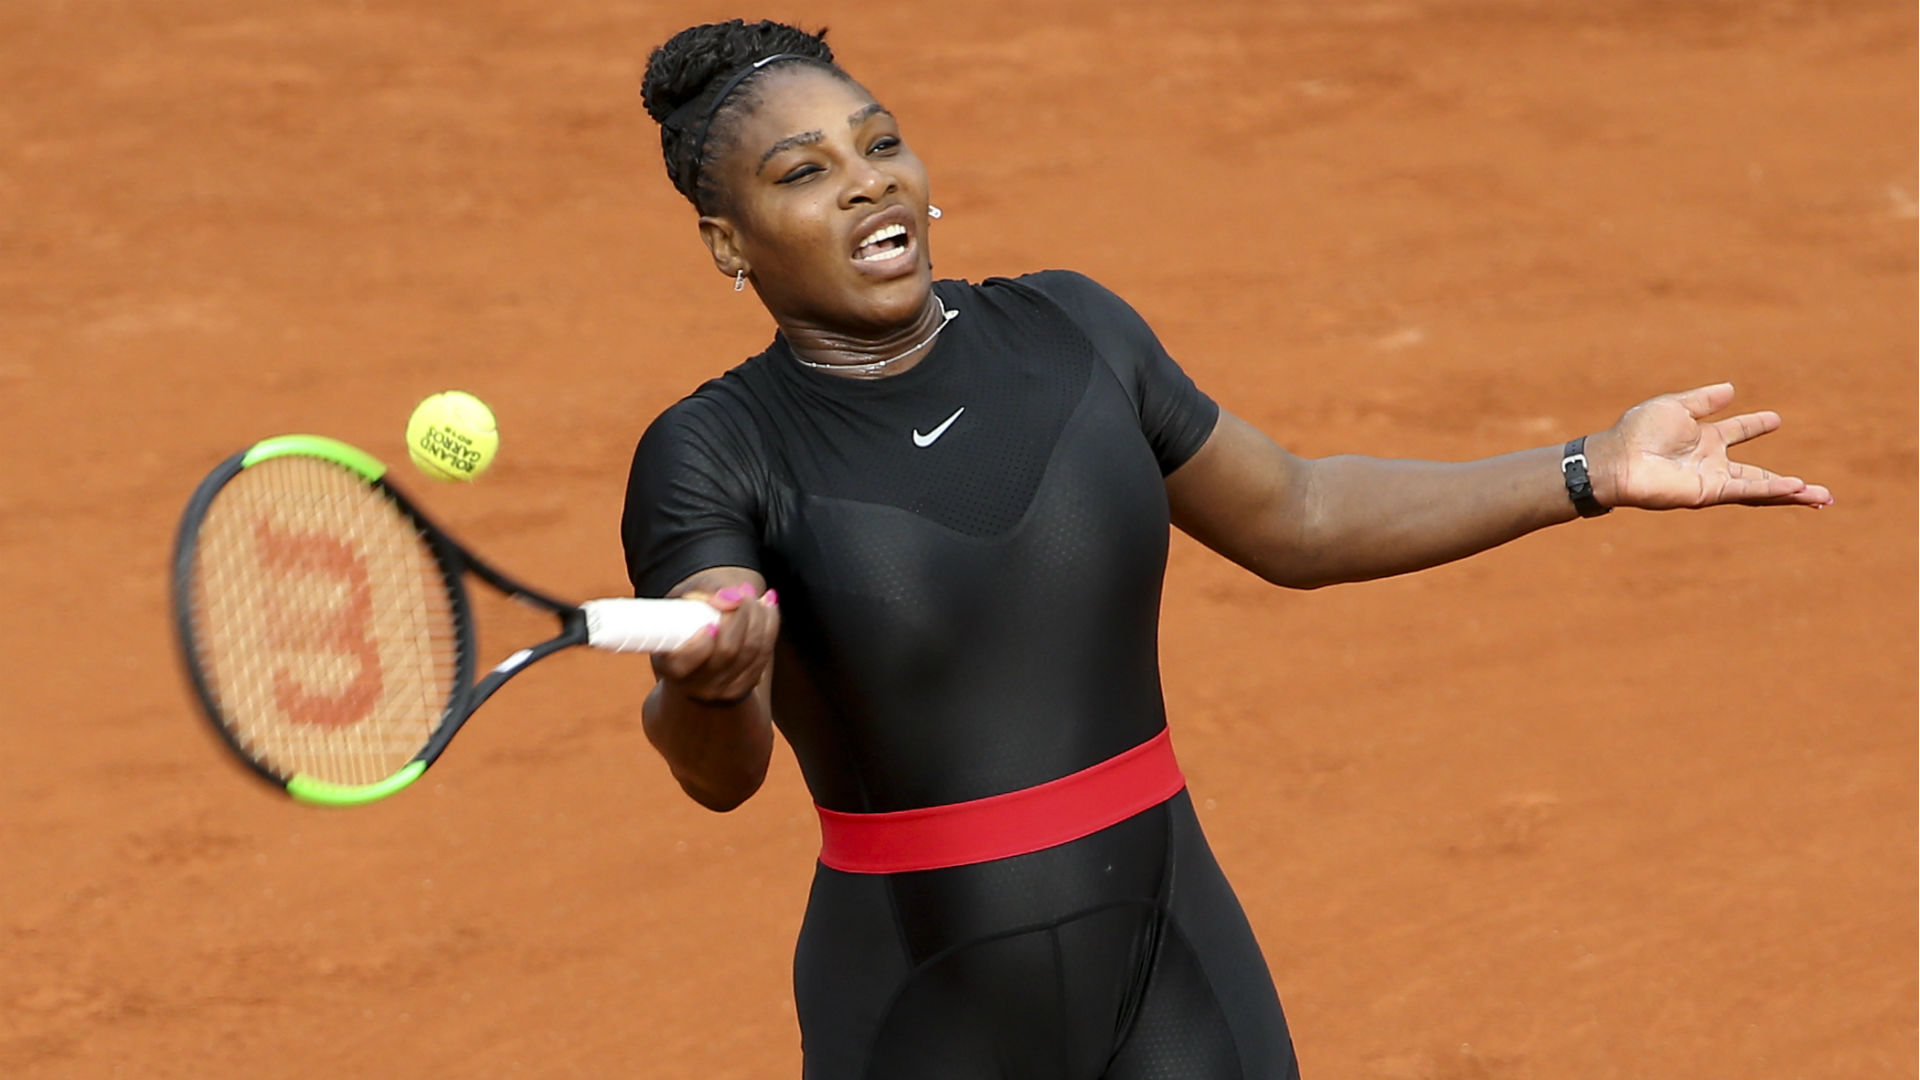 Serena Williams rocks a bodysuit in return to major championship tennis